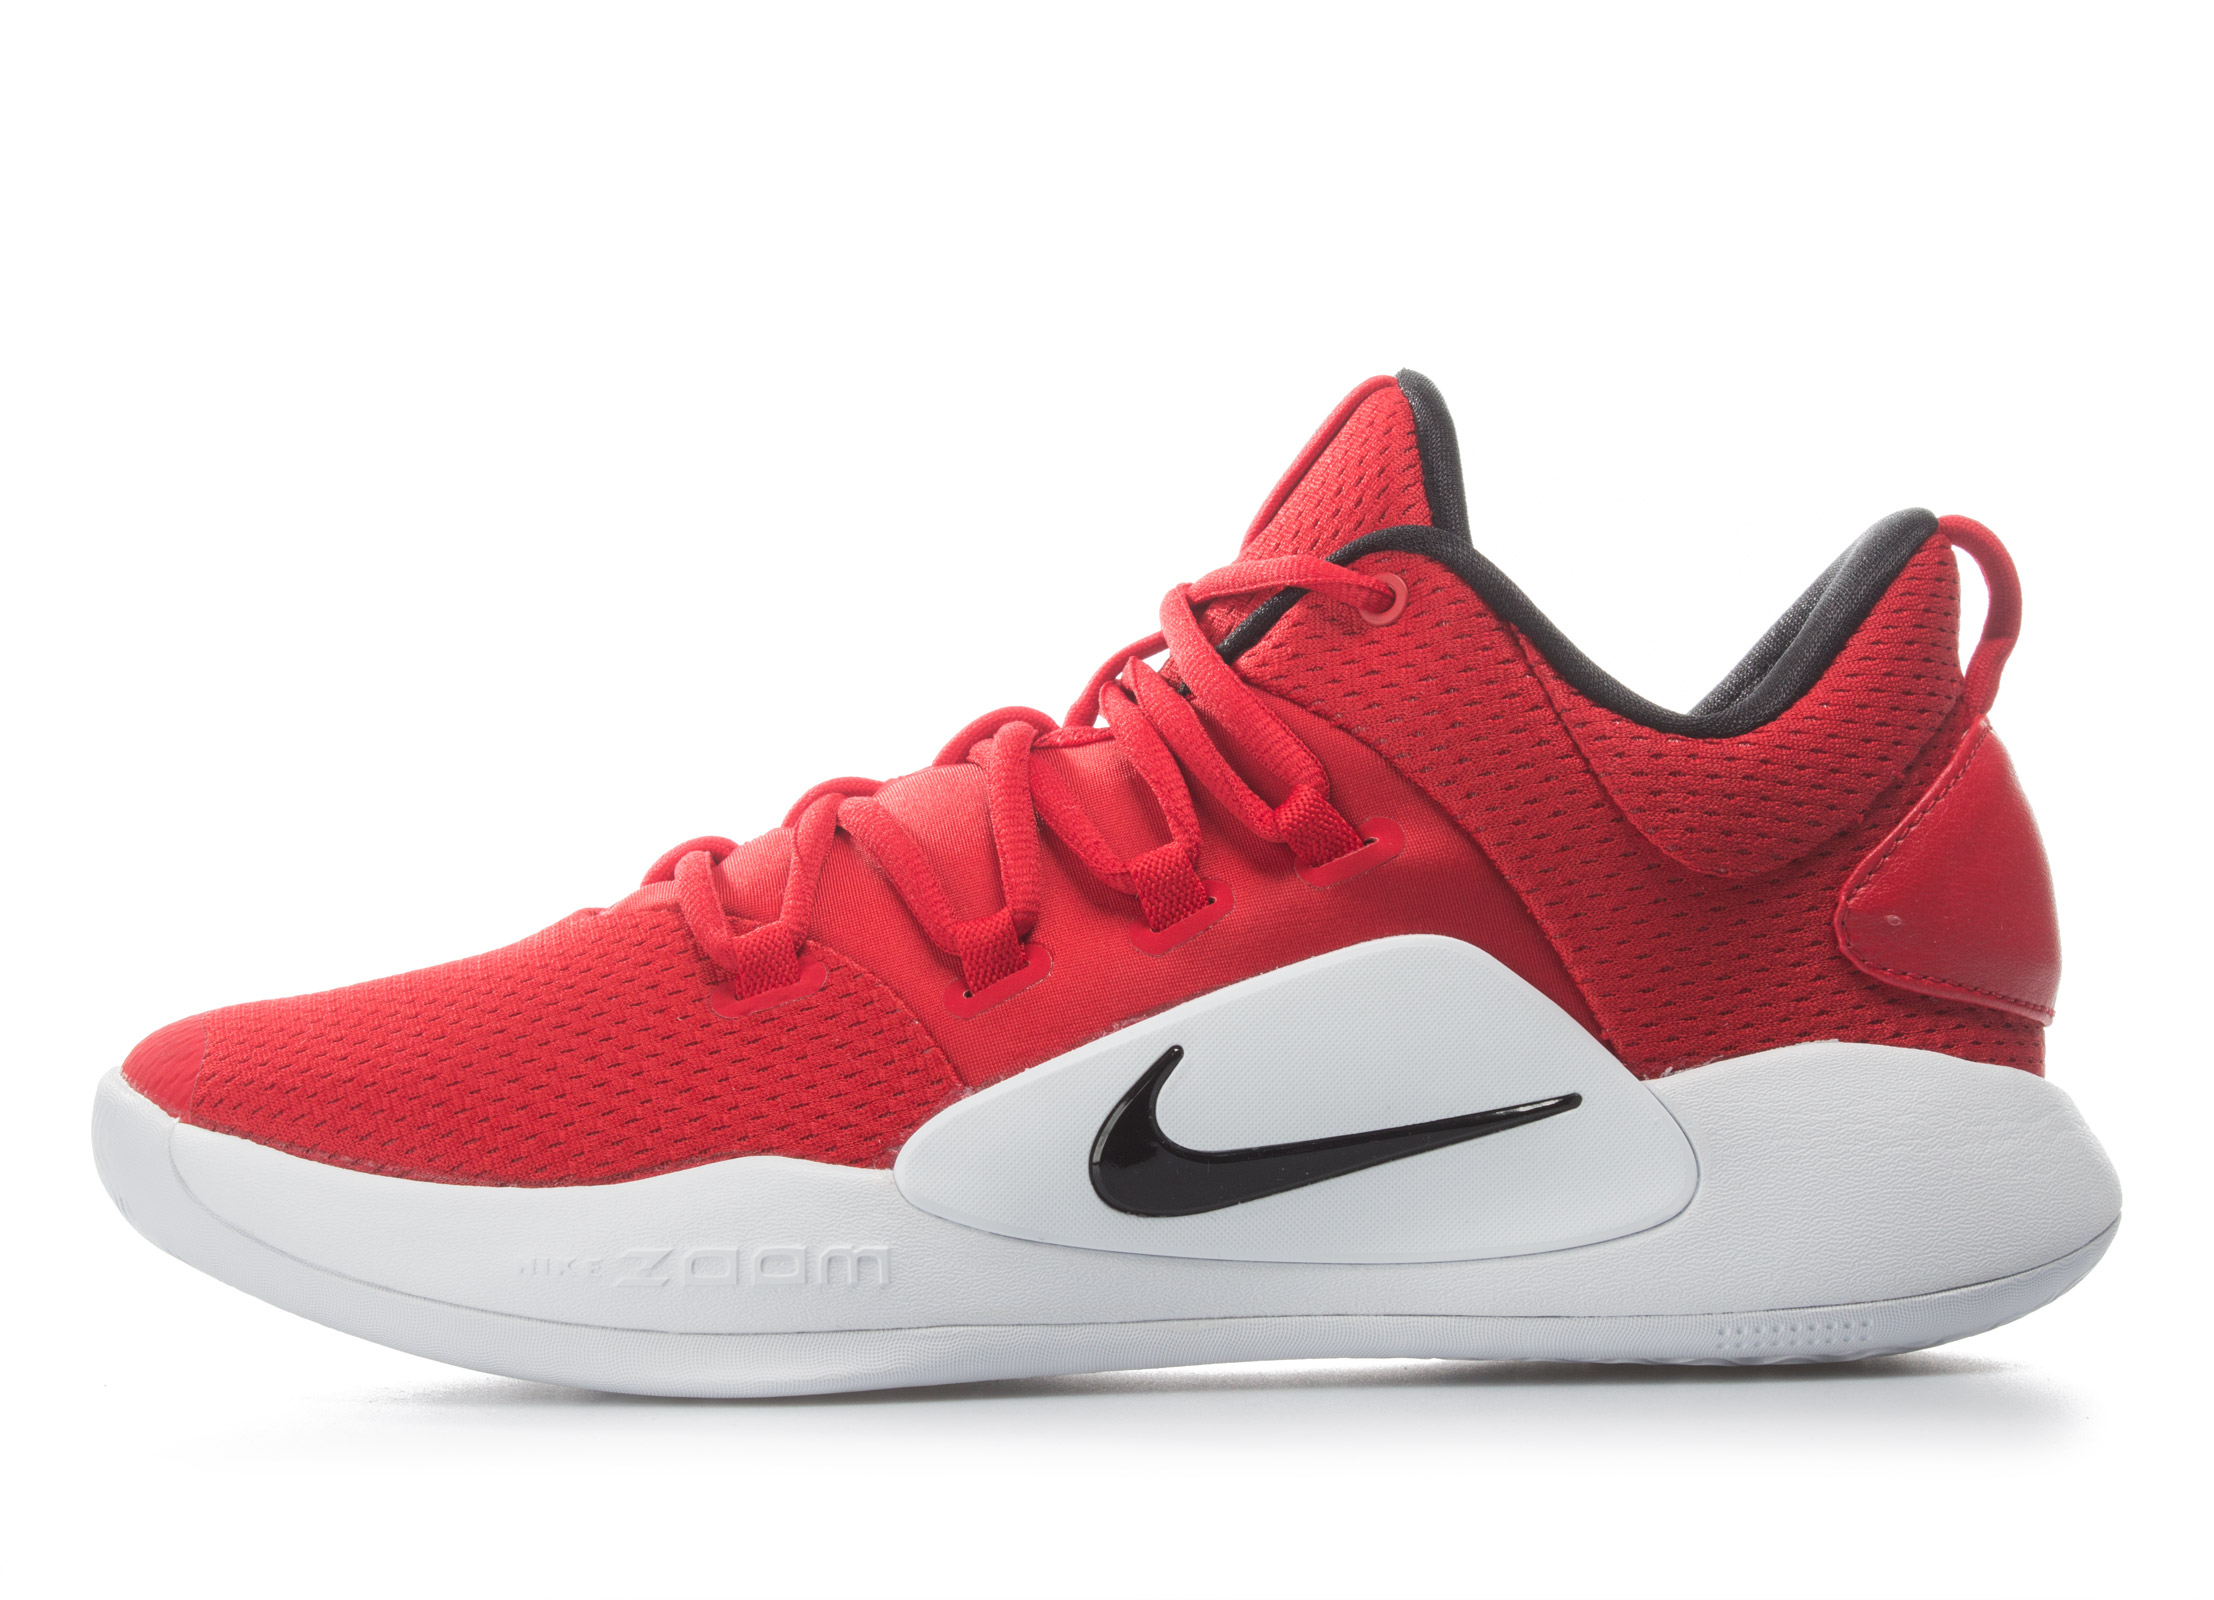 NIKE HYPERDUNK X LOW (TEAM) AR0463-600 Κόκκινο